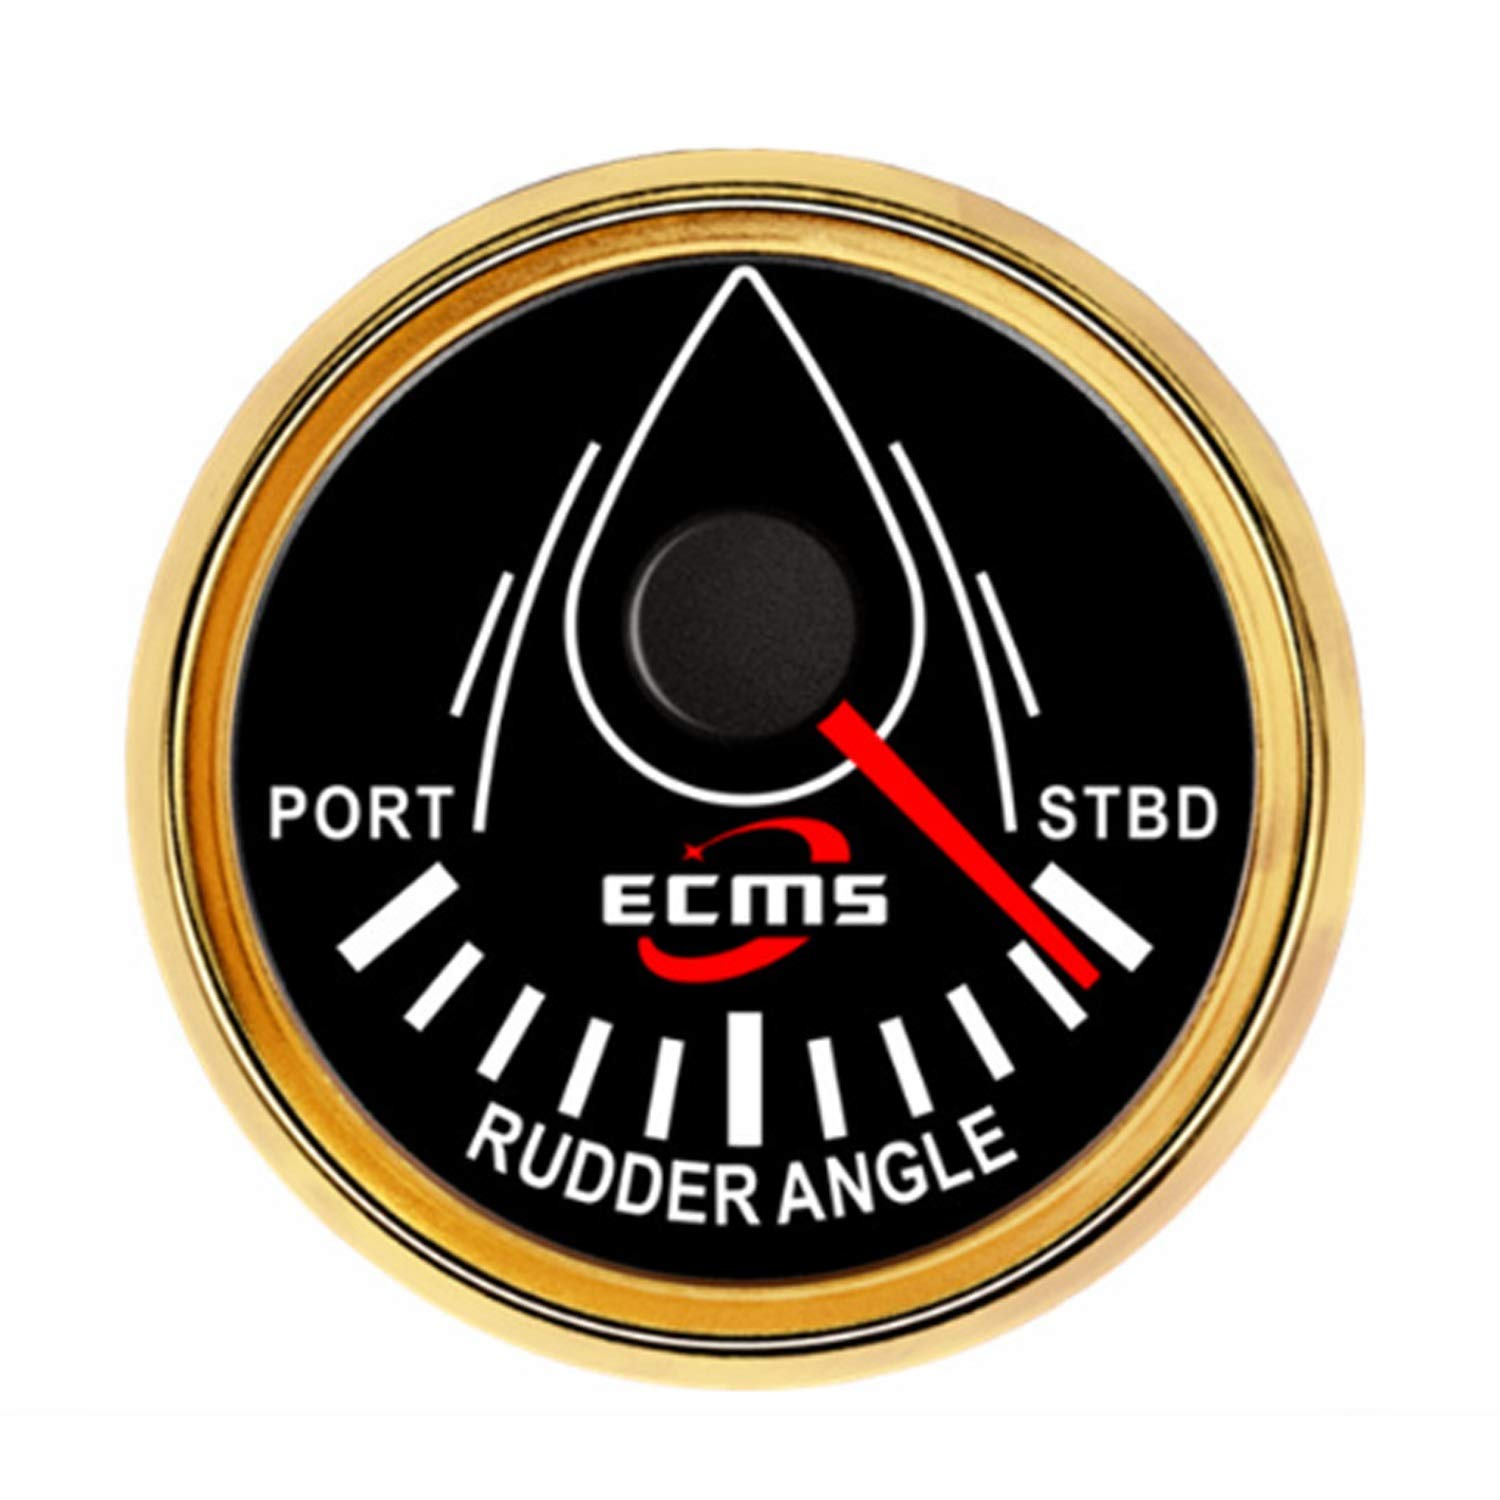 Low Power Consumption Waterproof Rudder Angle Indicator Gauge Meter 0-190ohm with Mating Sensor 2''(52mm) with Backlight, Waterproof, Lightning-Proof by JUNJIAGAO-gauge